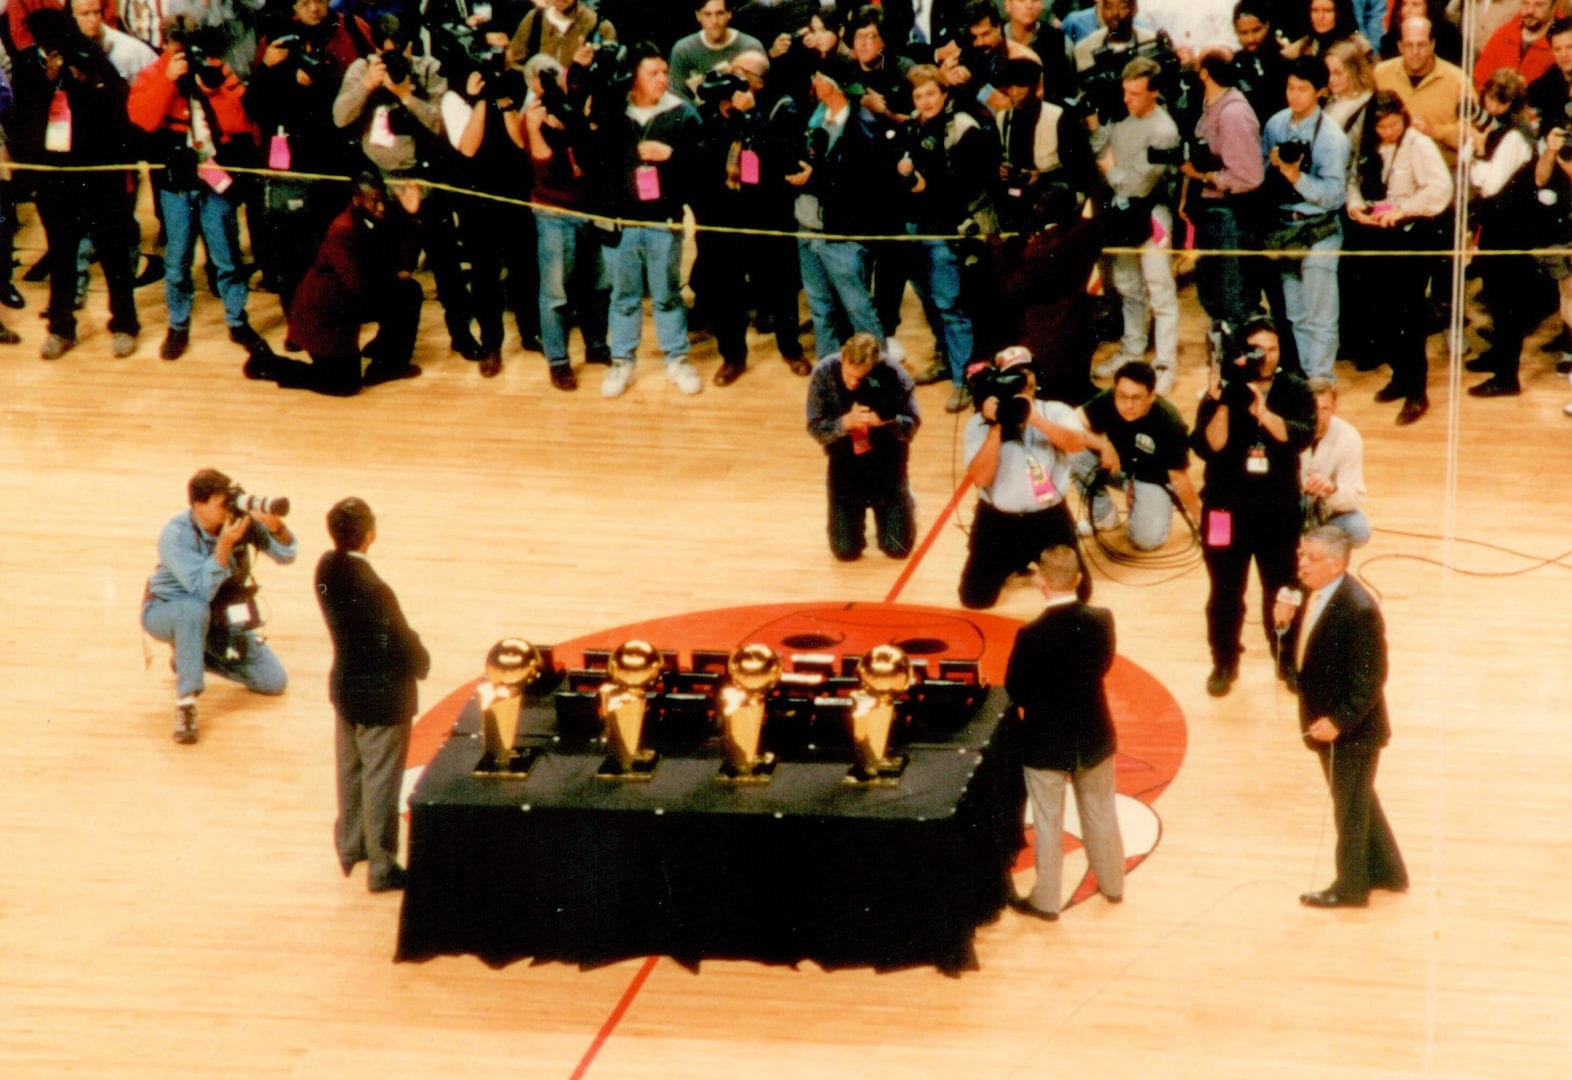 The trophies being presented